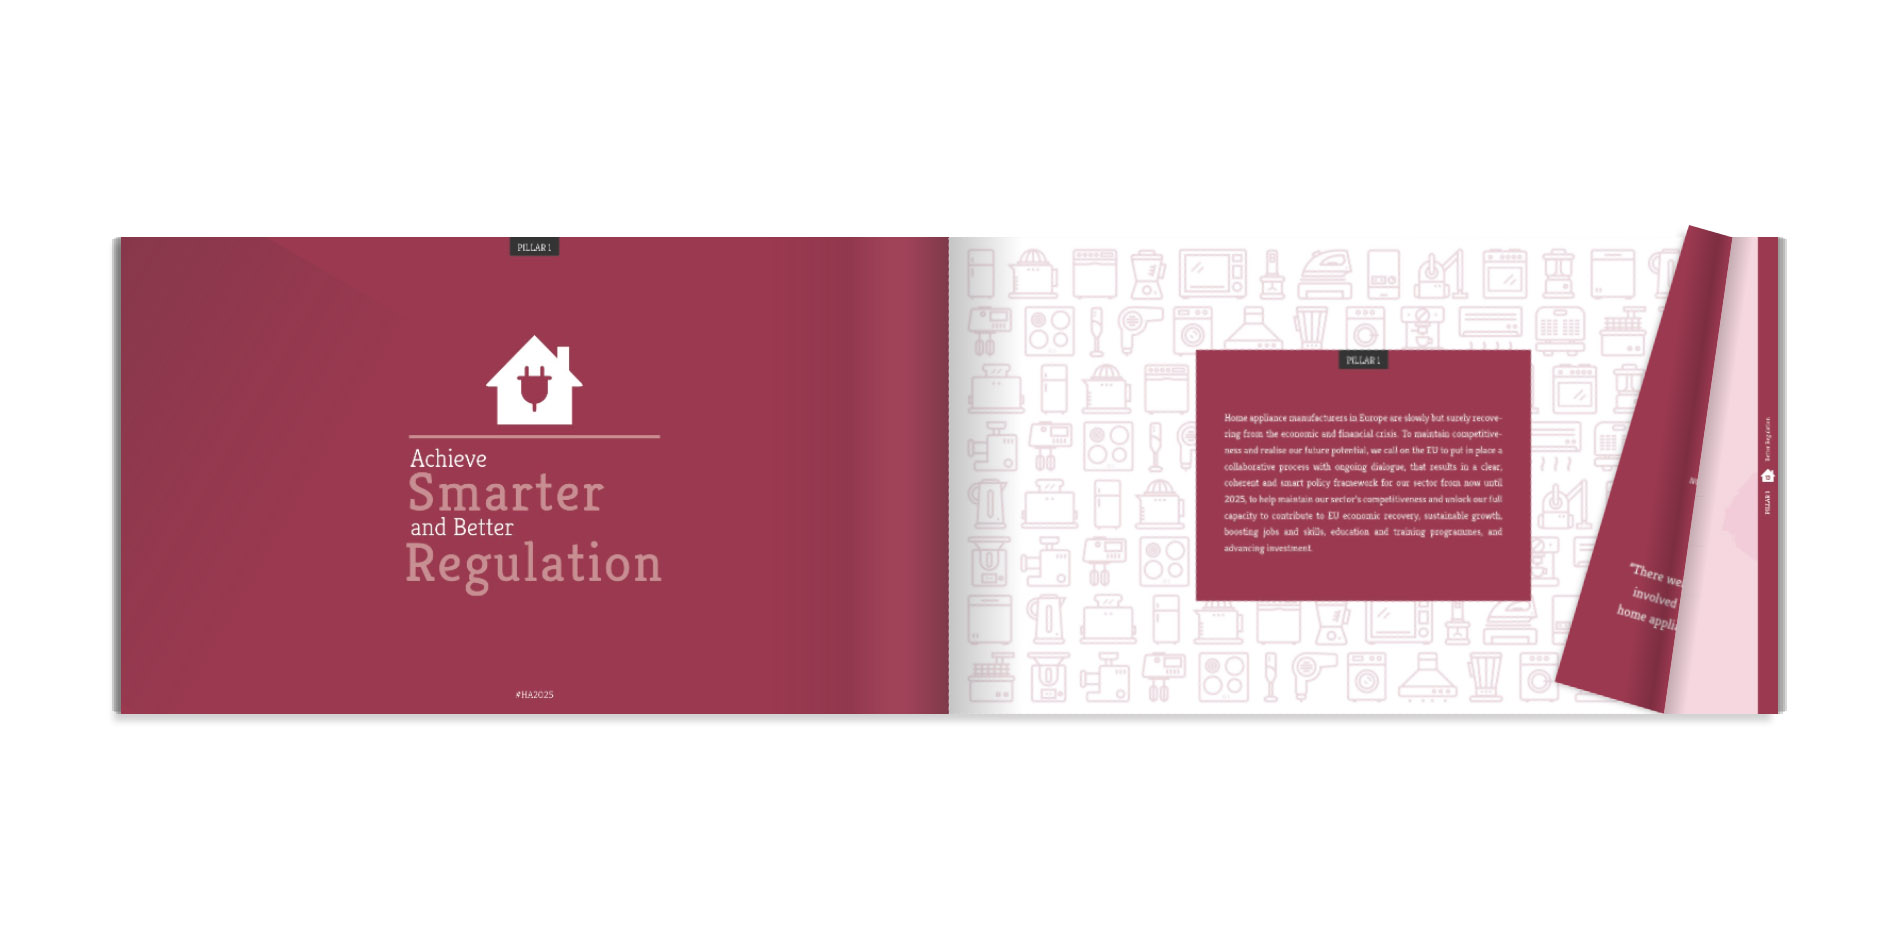 ceced_annual_report_design_infographic_1